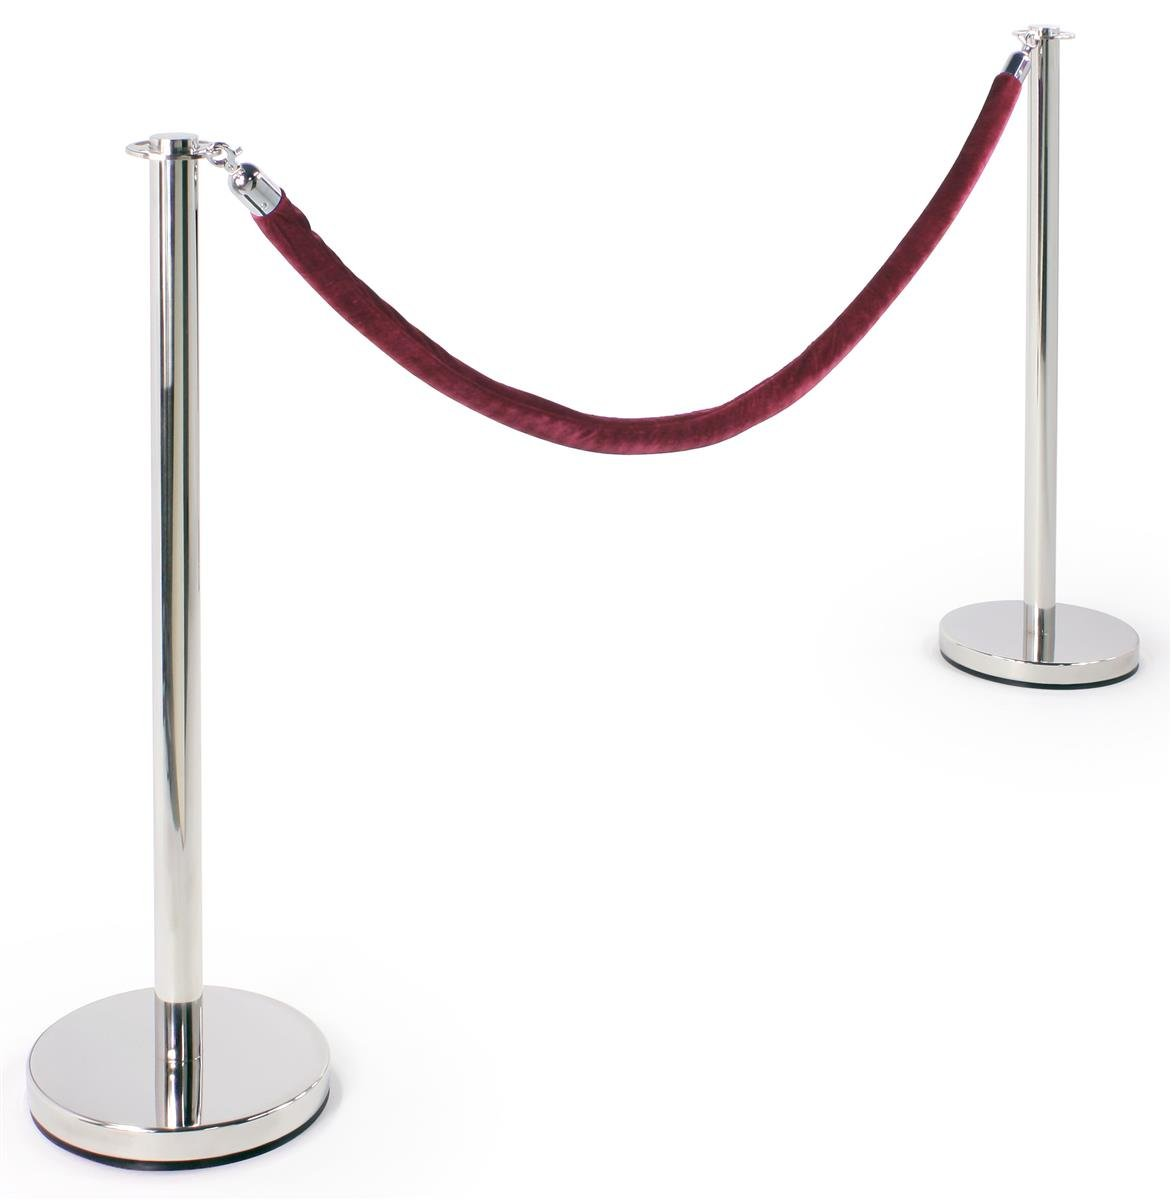 Stanchion Set - (2) 39''h Polished Chrome Stanchion Posts with a 78'' Burgundy Velvet Rope w/ Polished Chrome Hooks - Crowd Control Stanchions